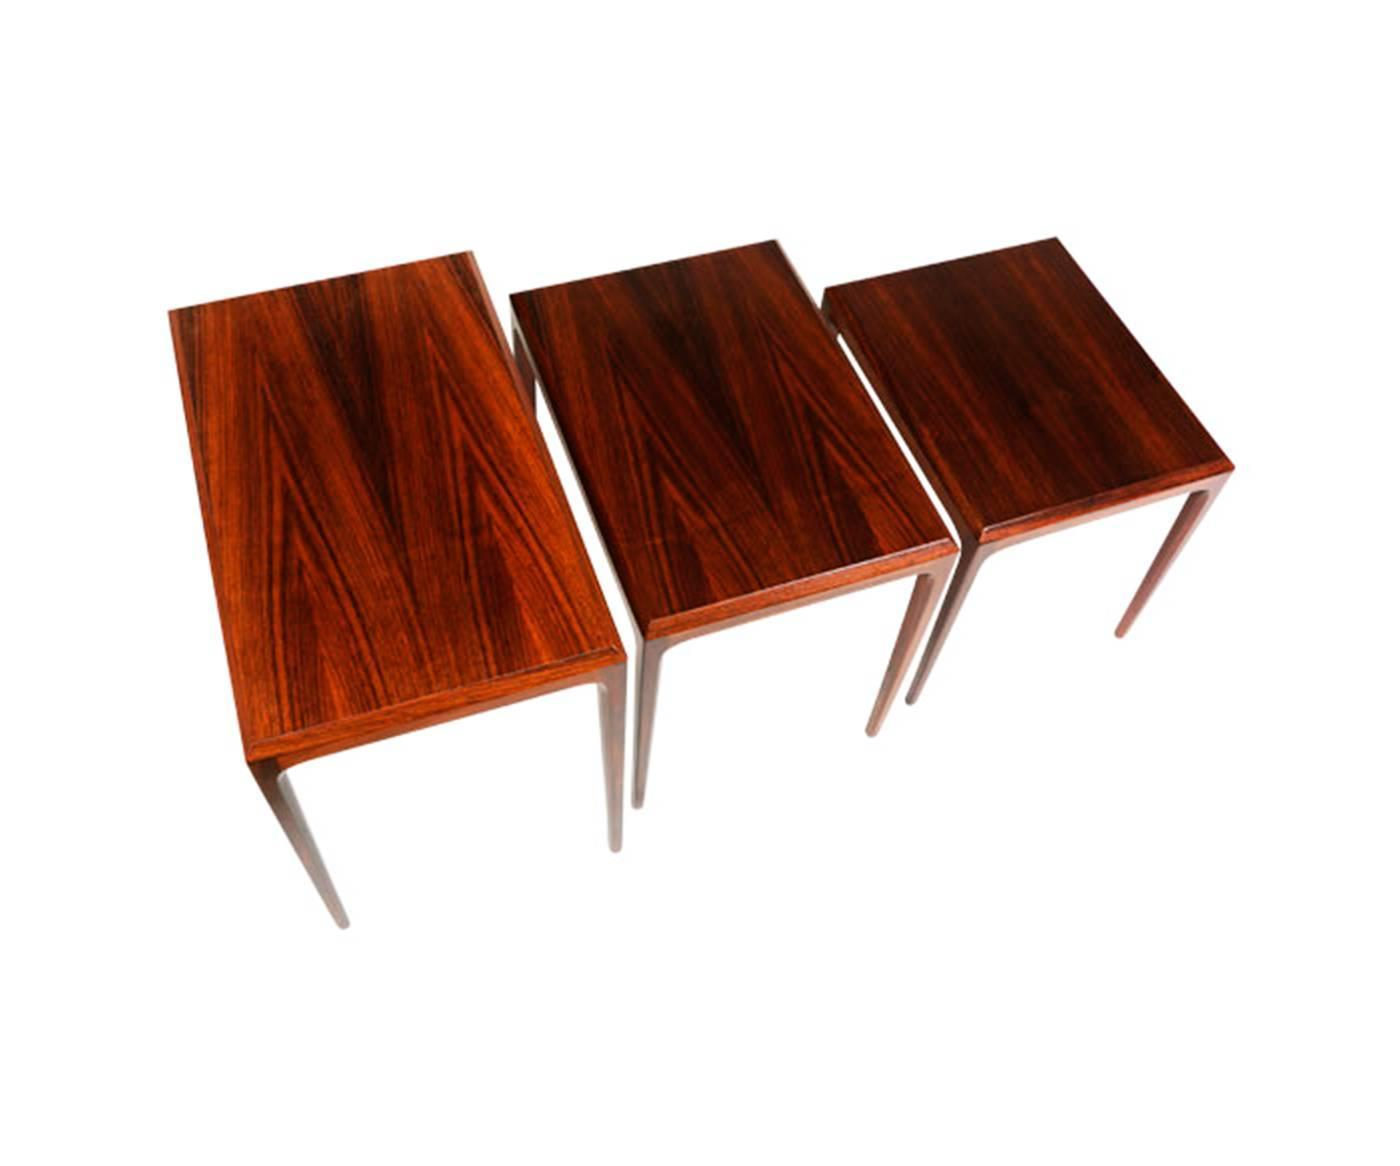 Johannes Andersen Rosewood Nesting Tables for CFC